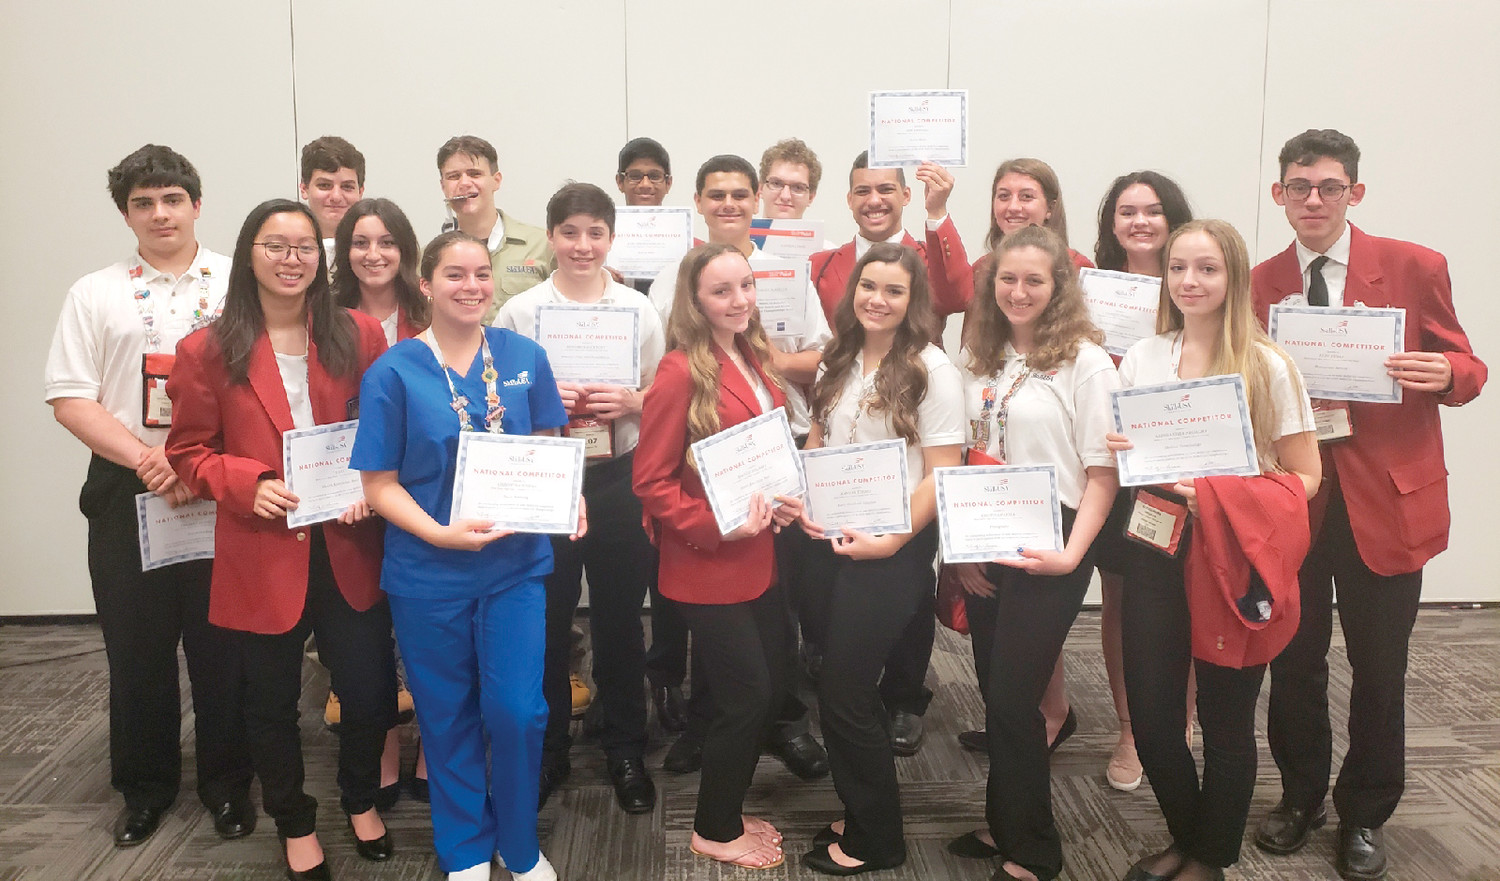 ALL WINNERS: The 24 students who attended the SkillsUSA national competition in Louisville, Kentucky this summer all placed in the top 25 spots, having competed with the best-of-the-best in their programs, nationwide.